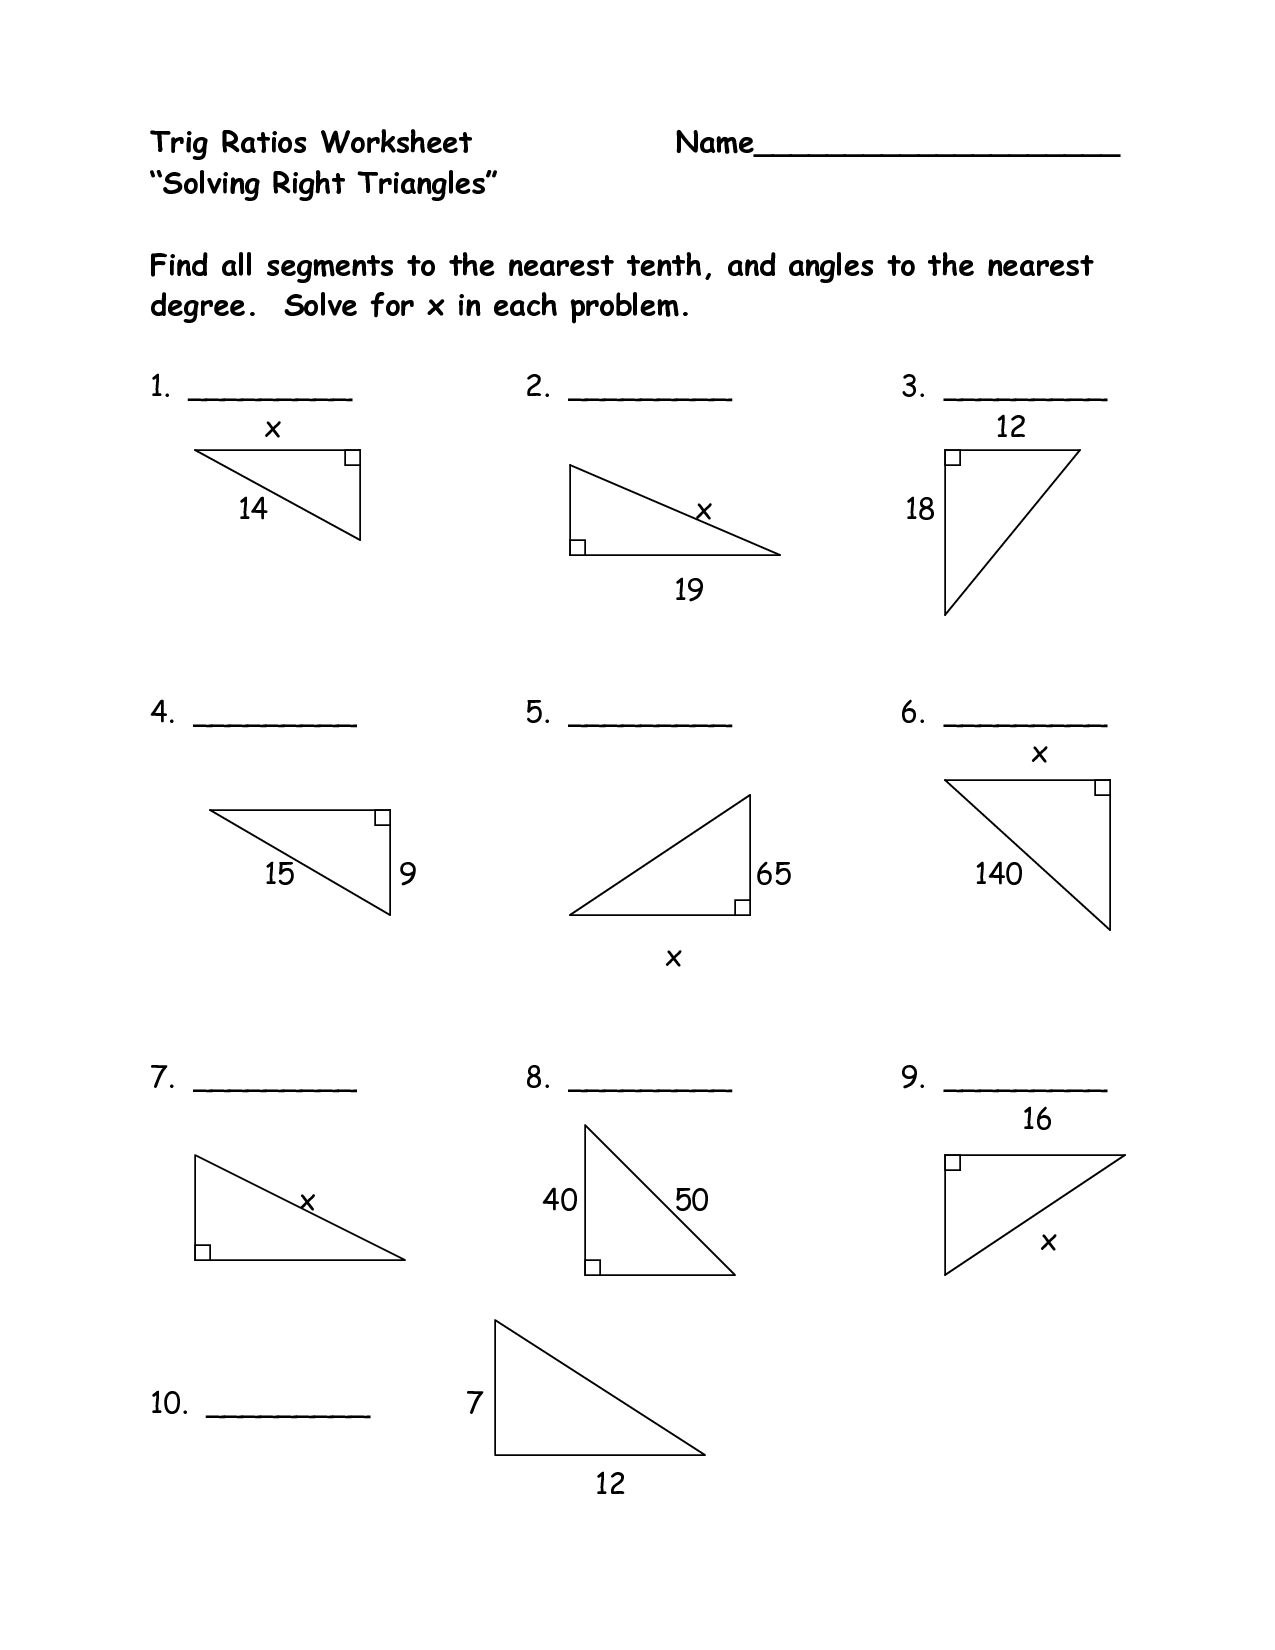 Find Ratio Worksheet